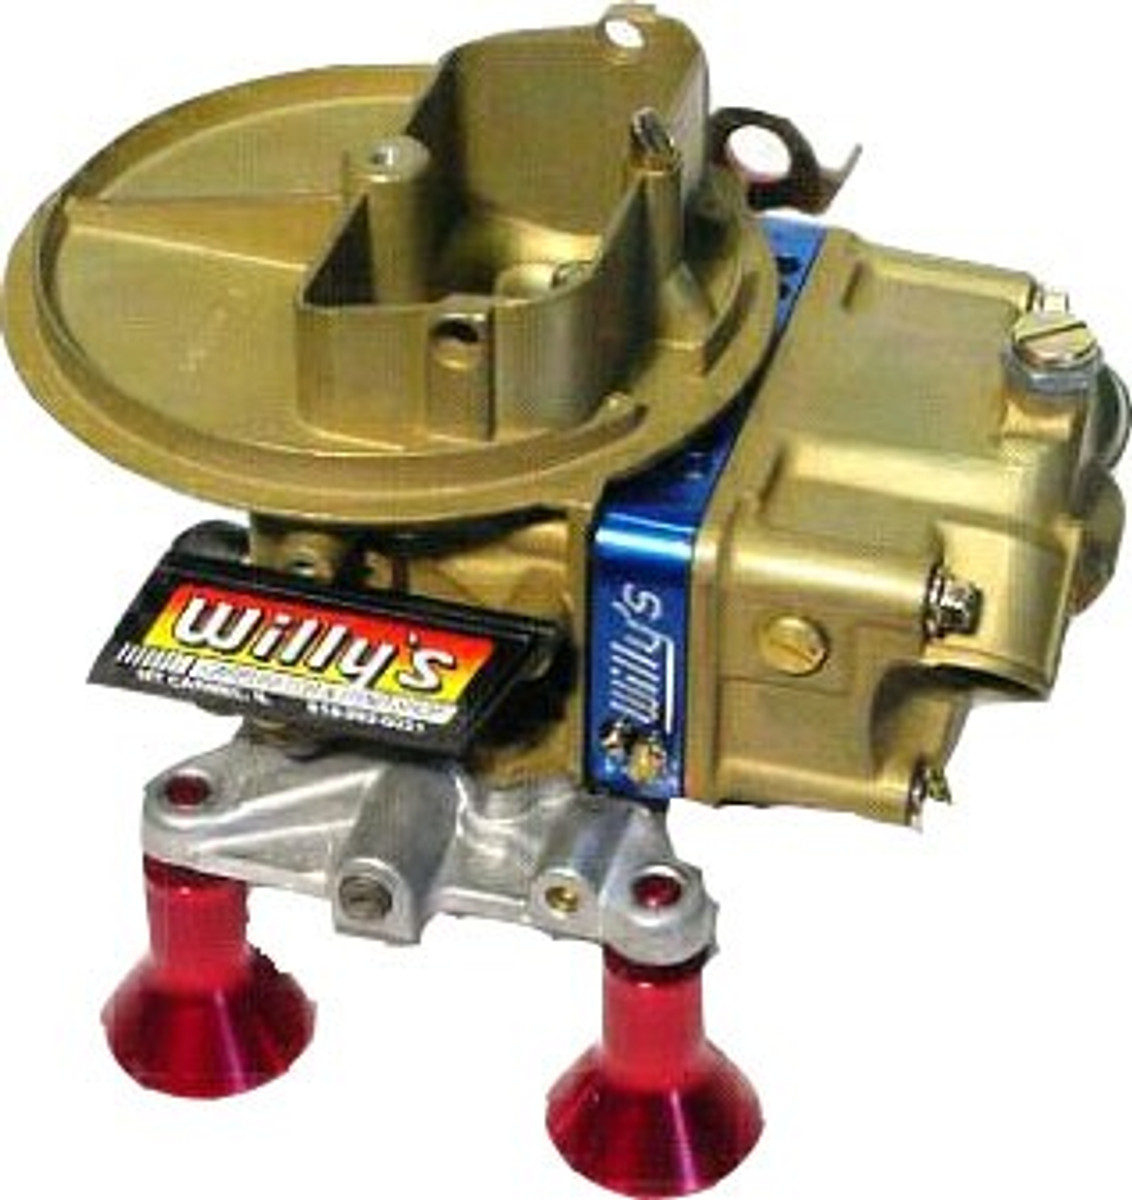 Willy's 500 CFM Alky Carb w/ ext adj block